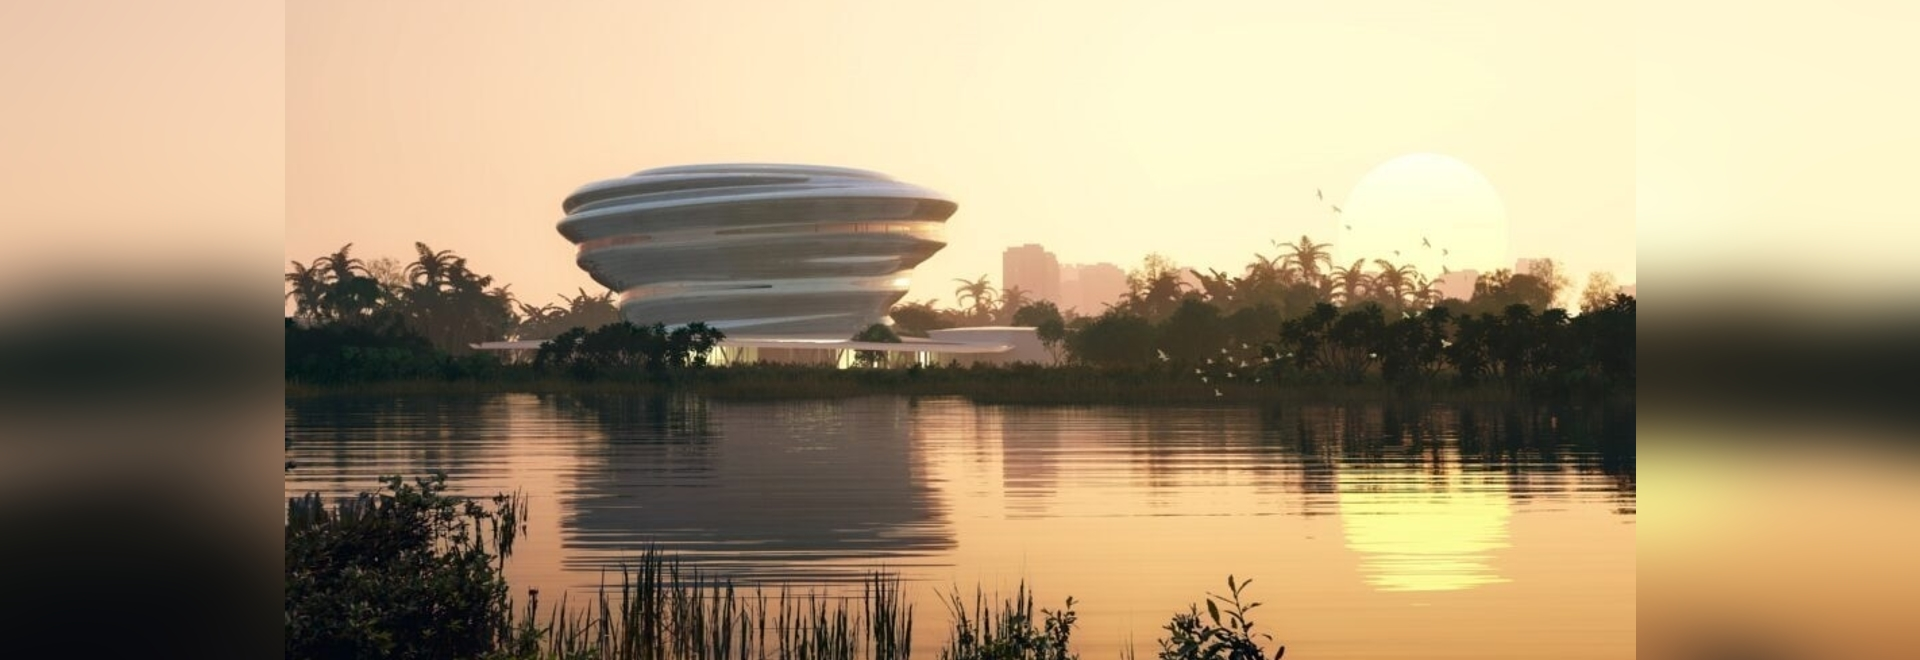 MAD shapes Hainan science and technology museum 'like a cloud in dialogue with nature'